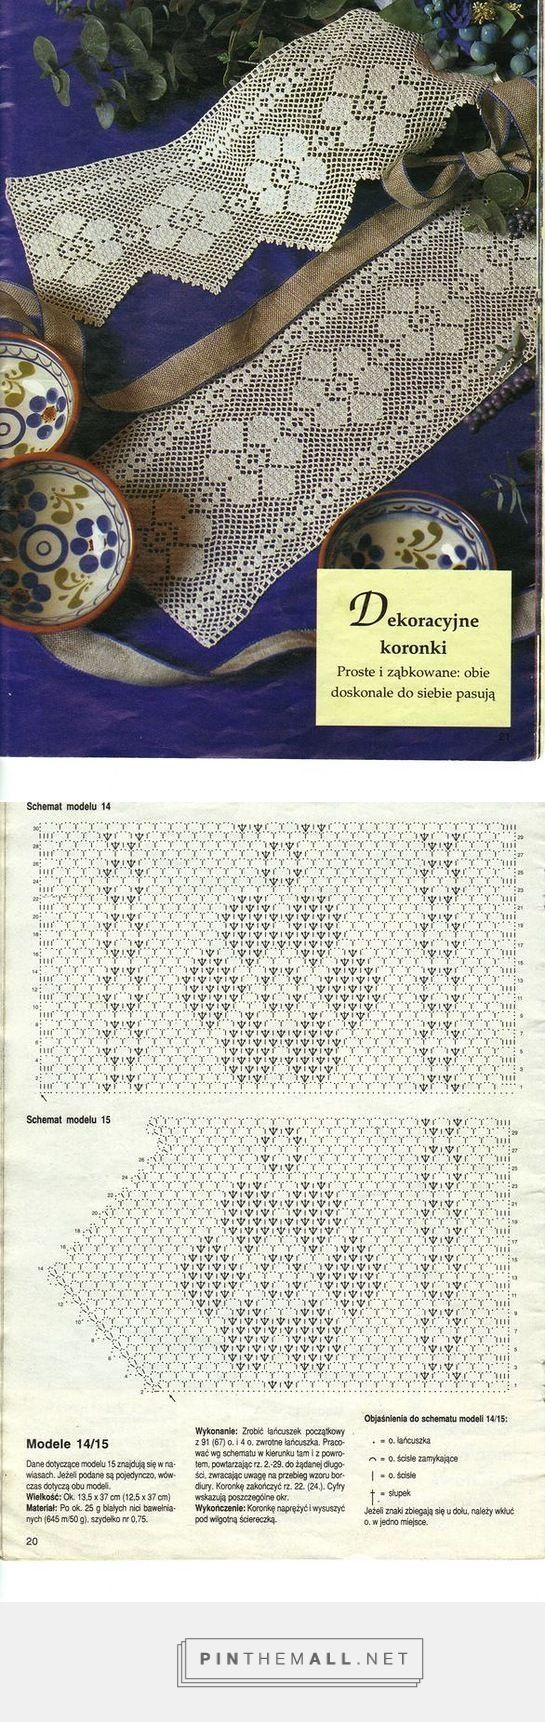 Filet crochet lace insert & edging with flower design: pike kenar dantel